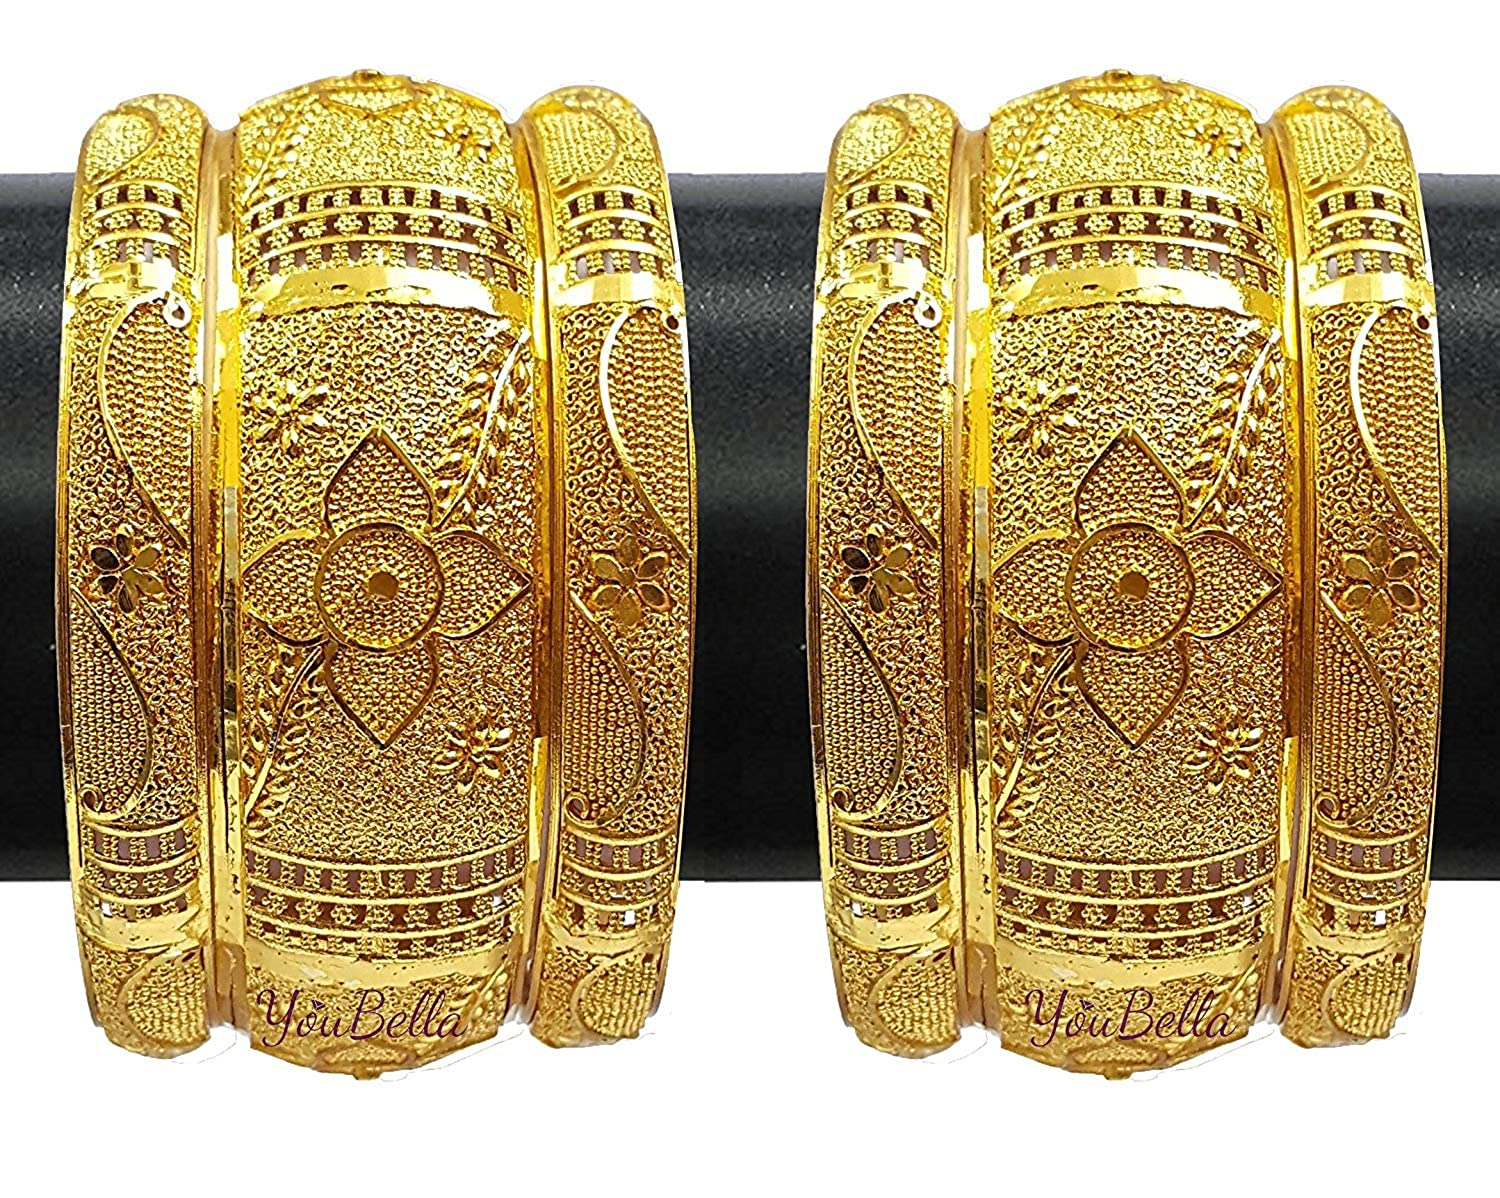 YouBella Fashion Jewellery Traditional Gold Plated Original